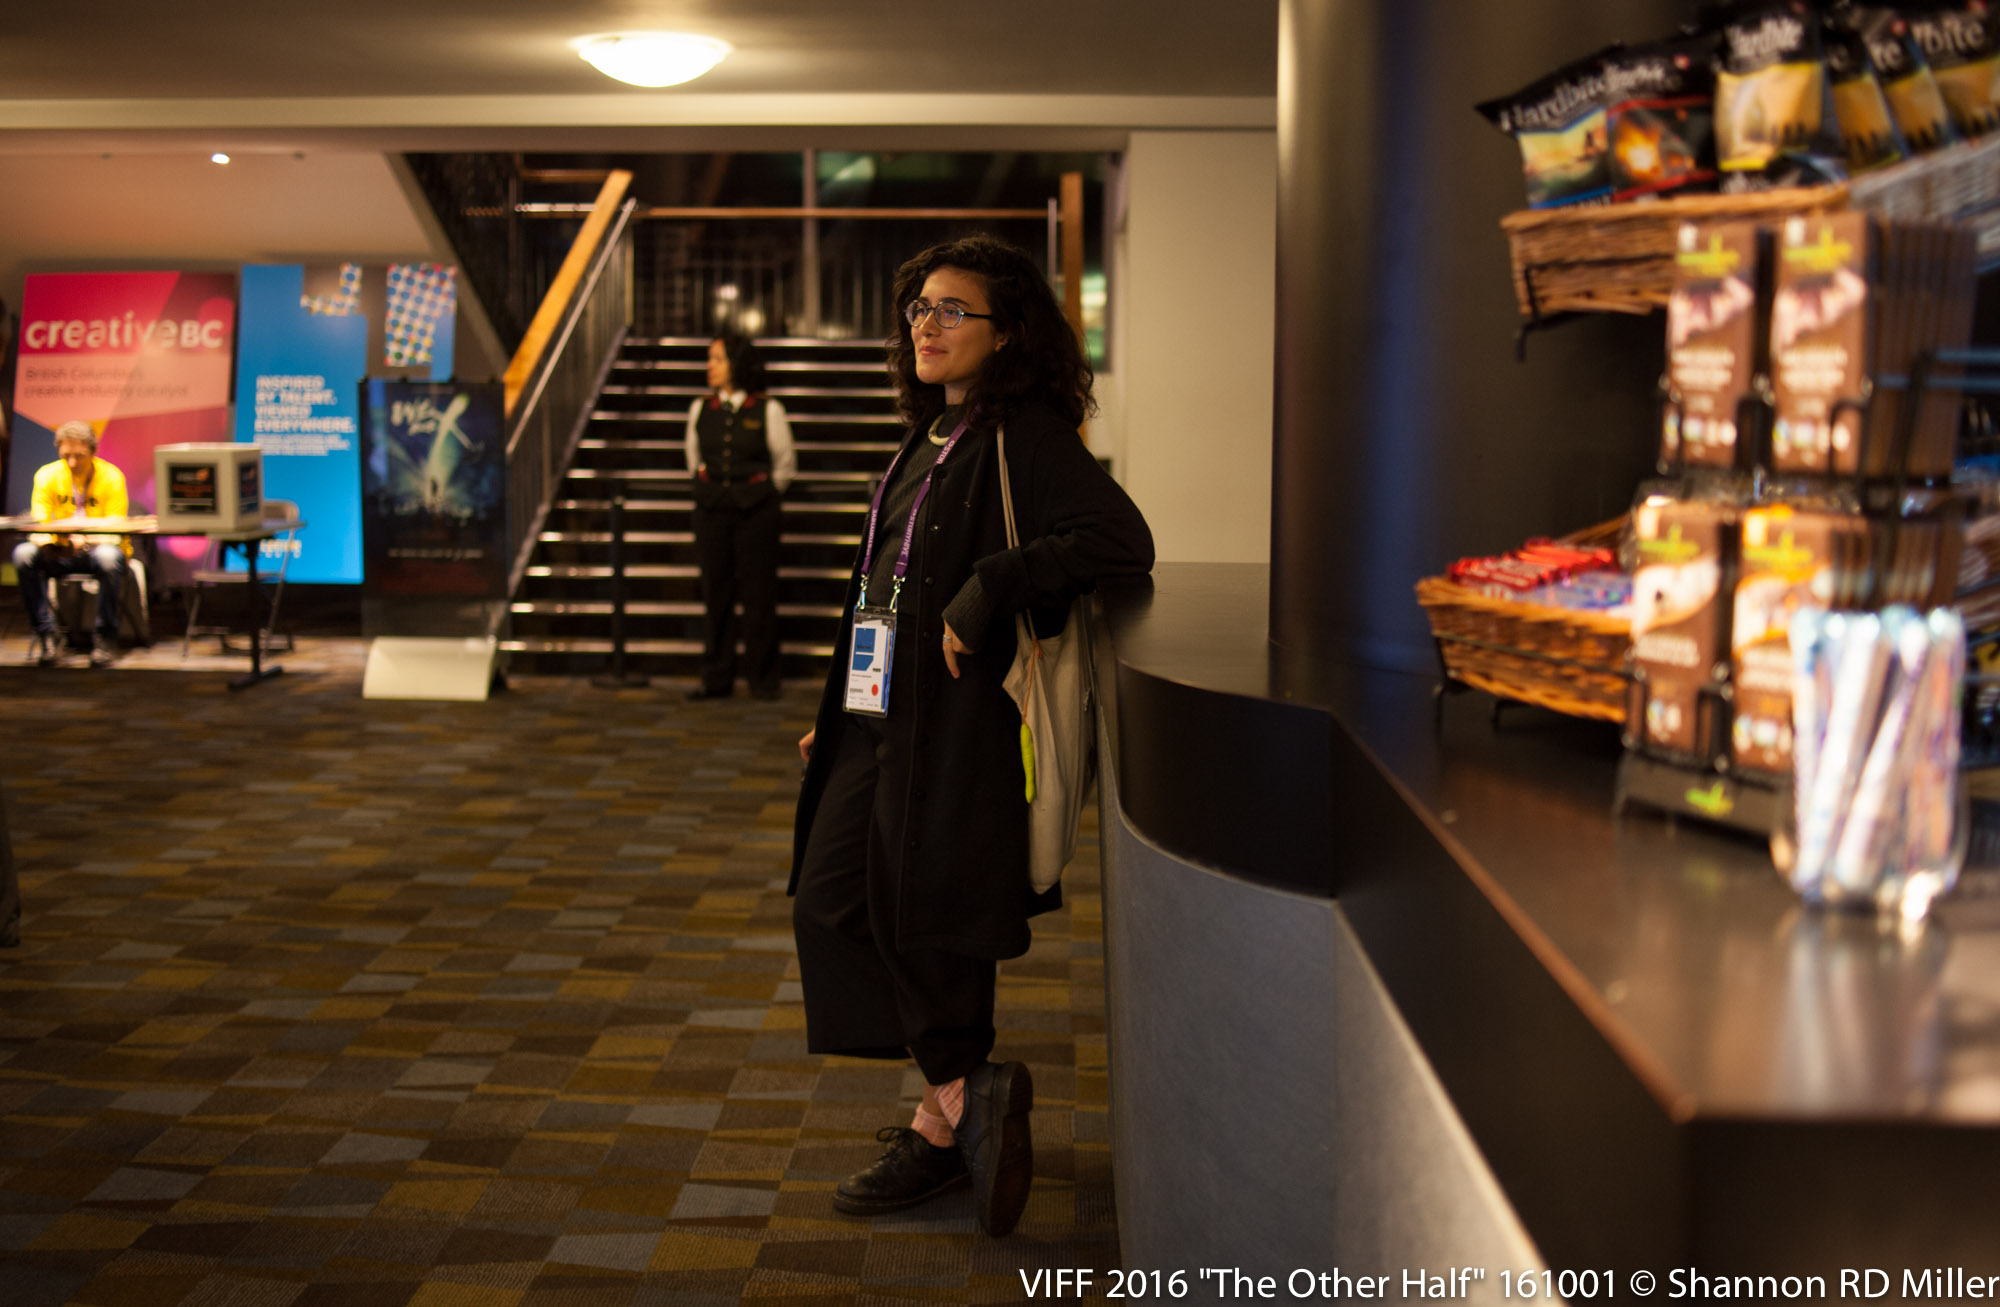 VIFF2016_The_Other_Half_161001_Shannon.R.D.Miller-21.jpg